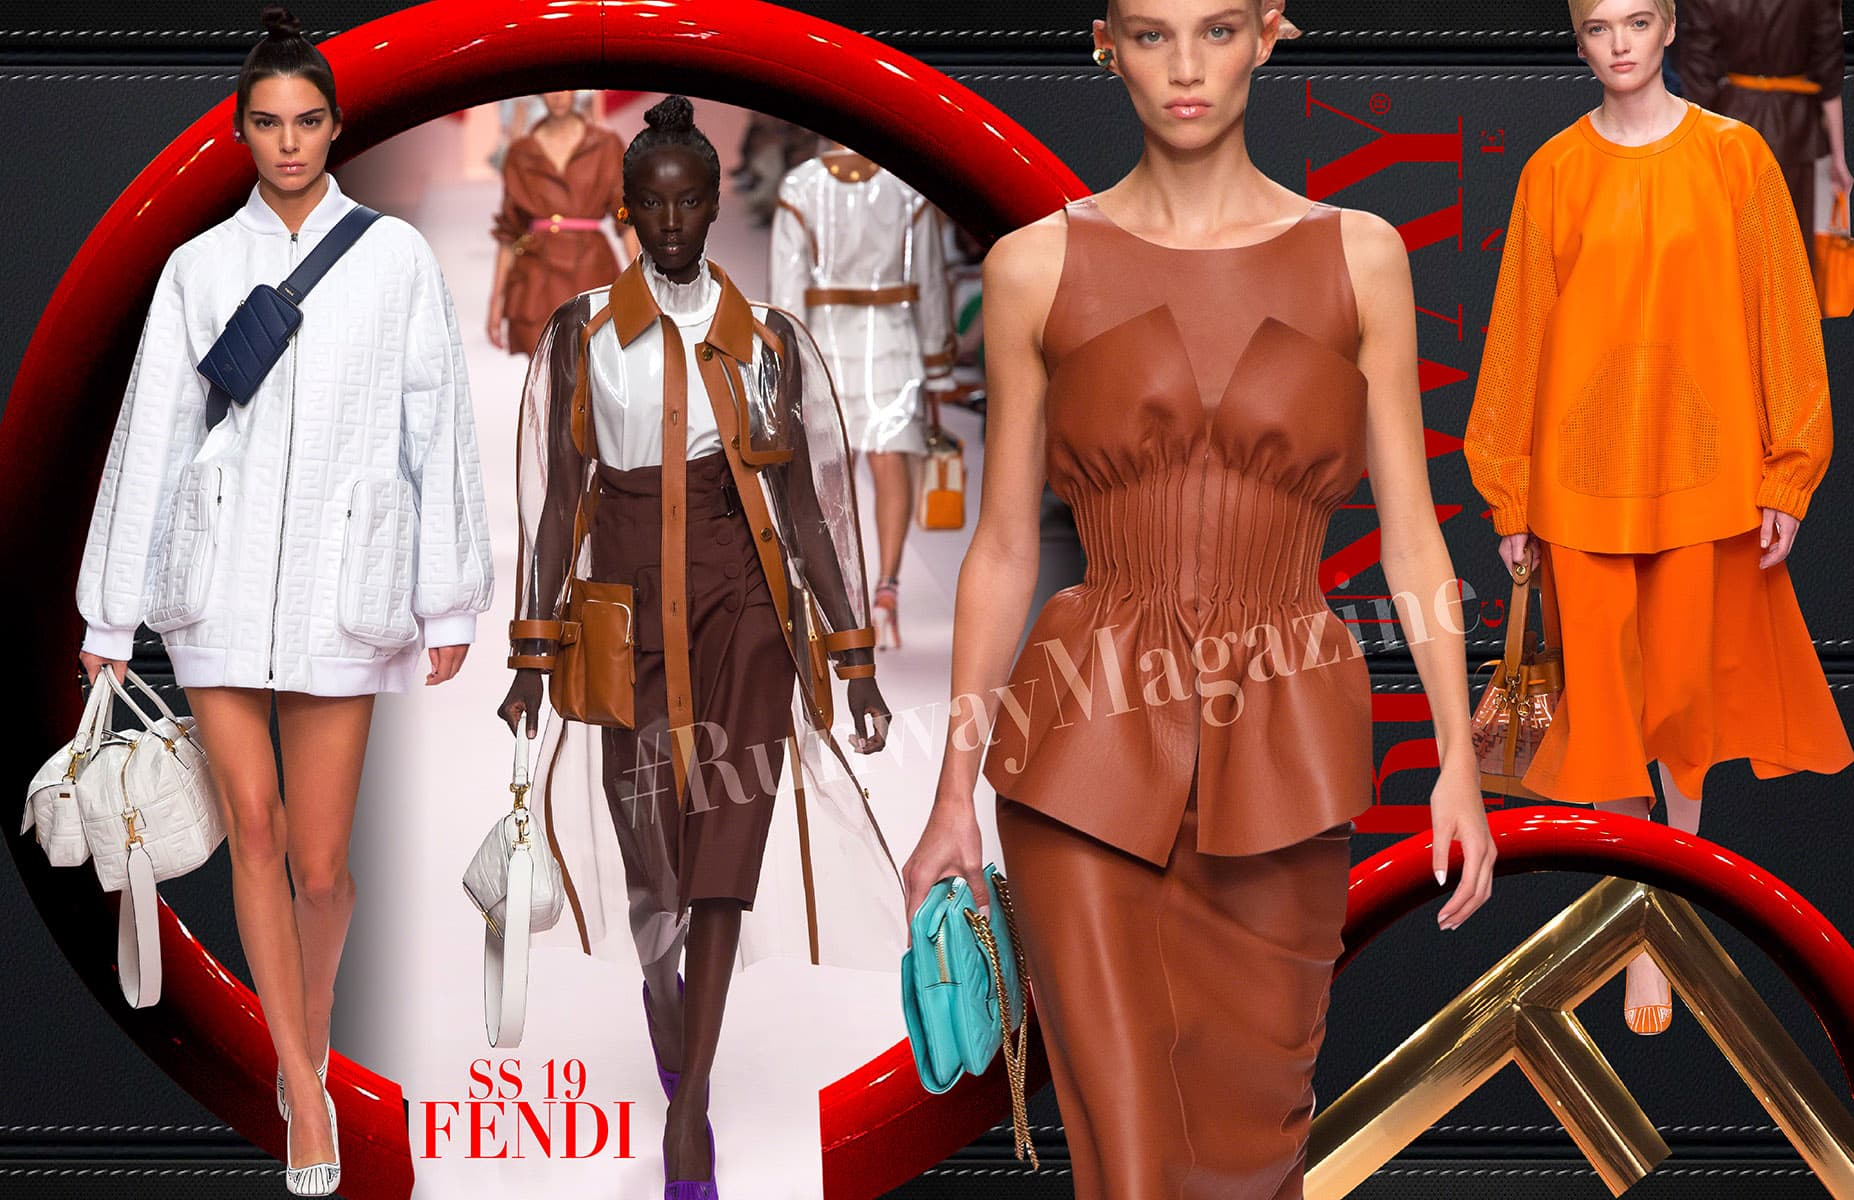 Orange trend - Fendi Spring Summer 2019 by Runway Magazine Milan Fashion Week